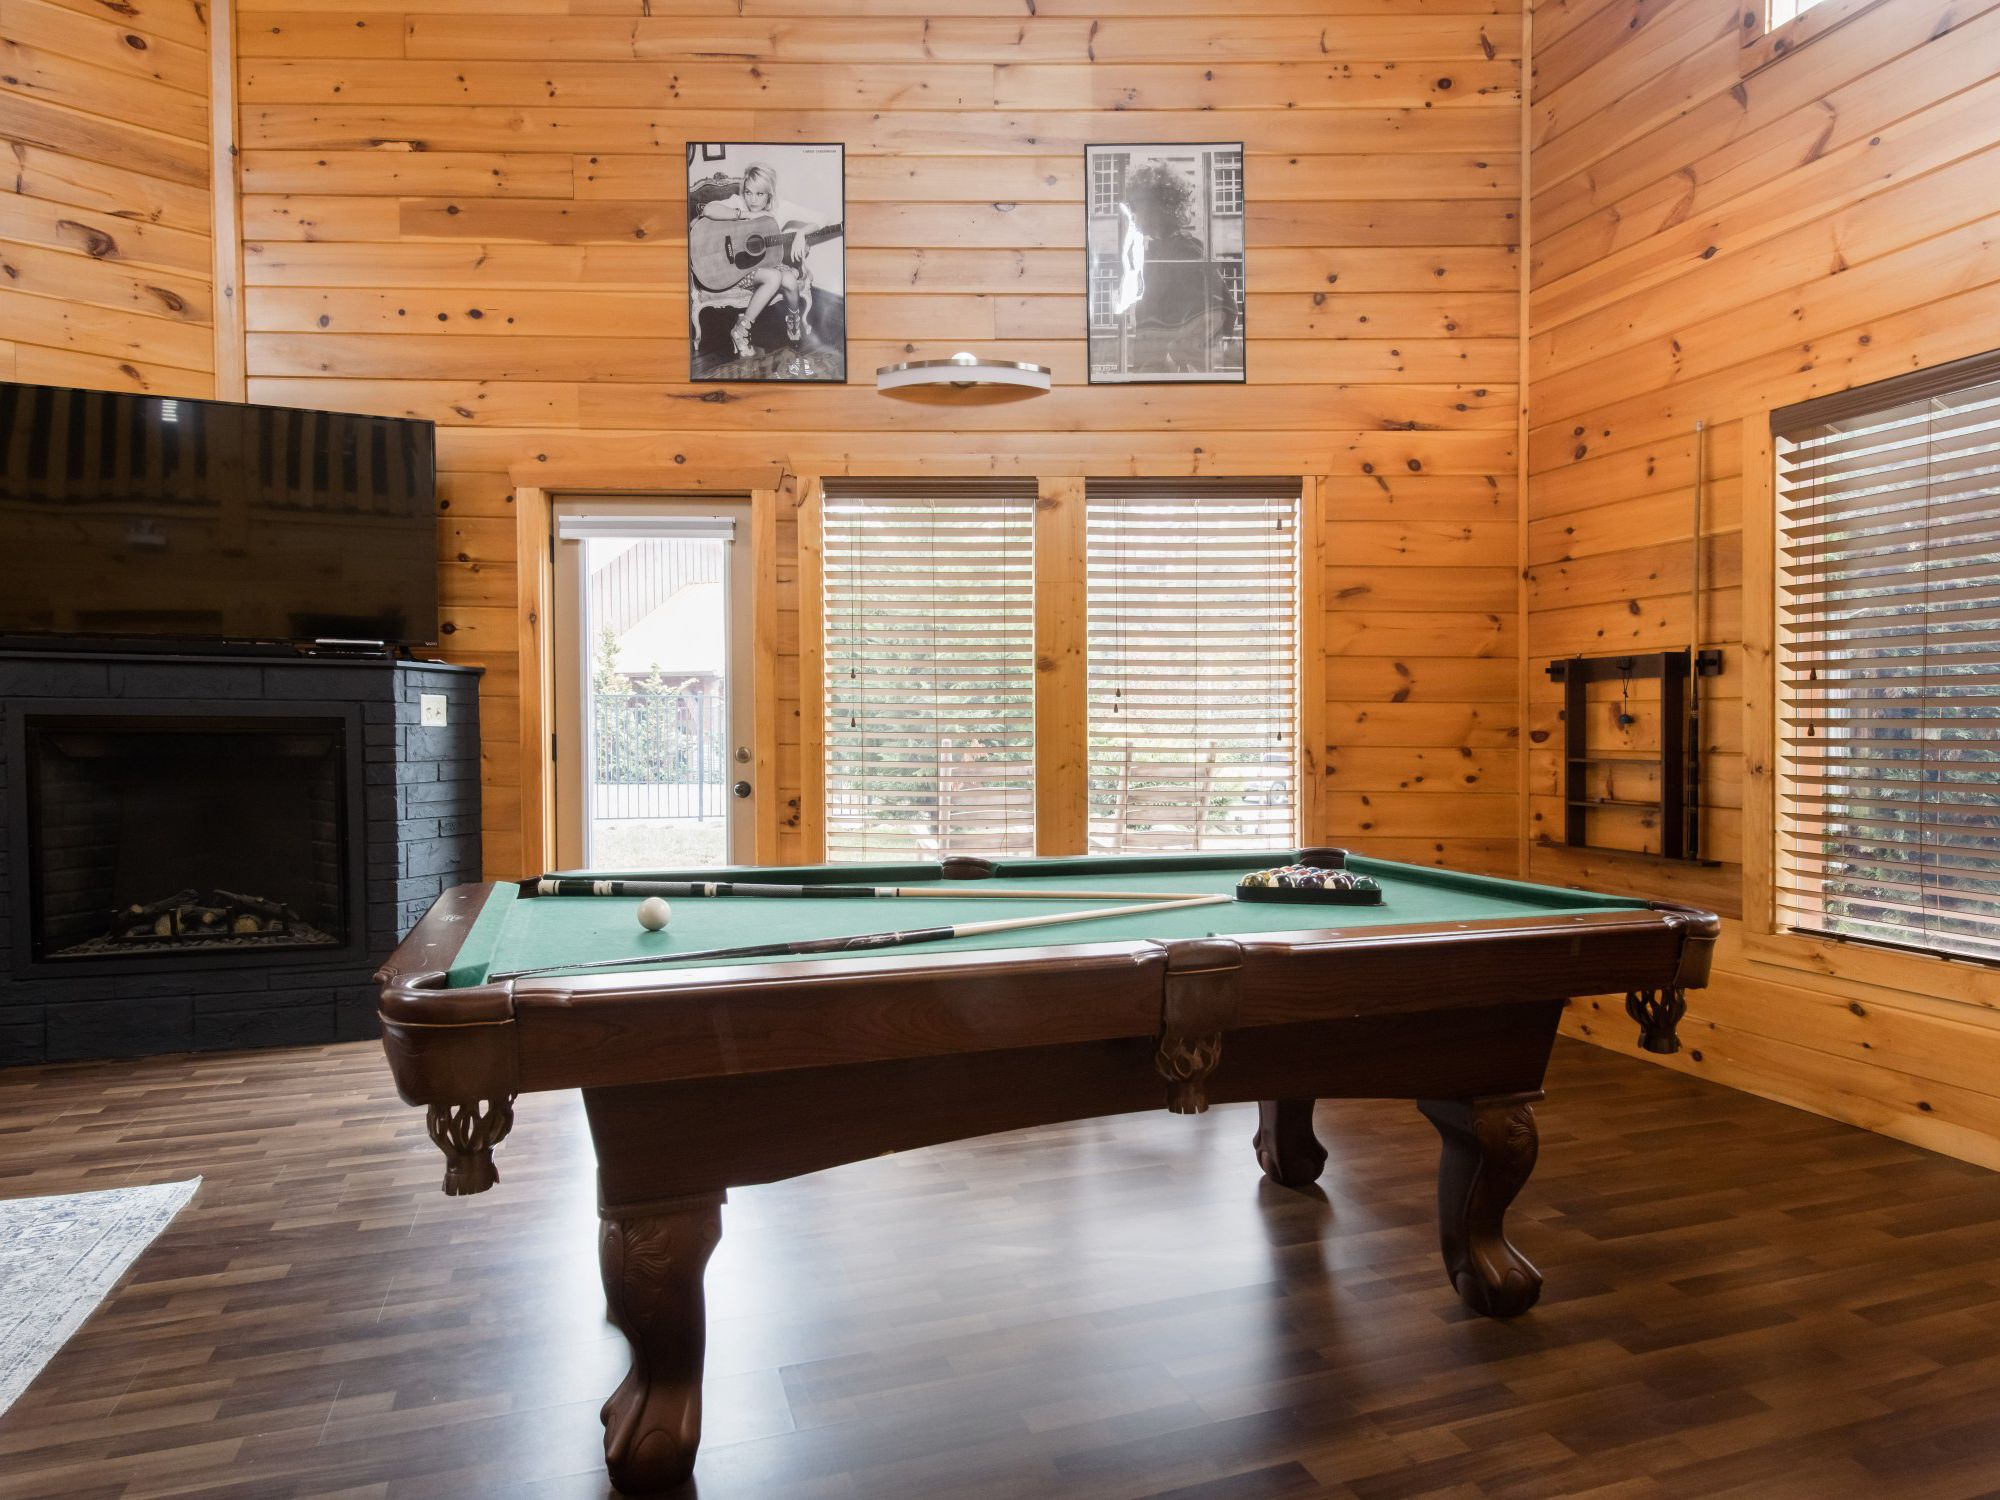 The 9 Best Great Smoky Mountains Cabin Rentals of 2019